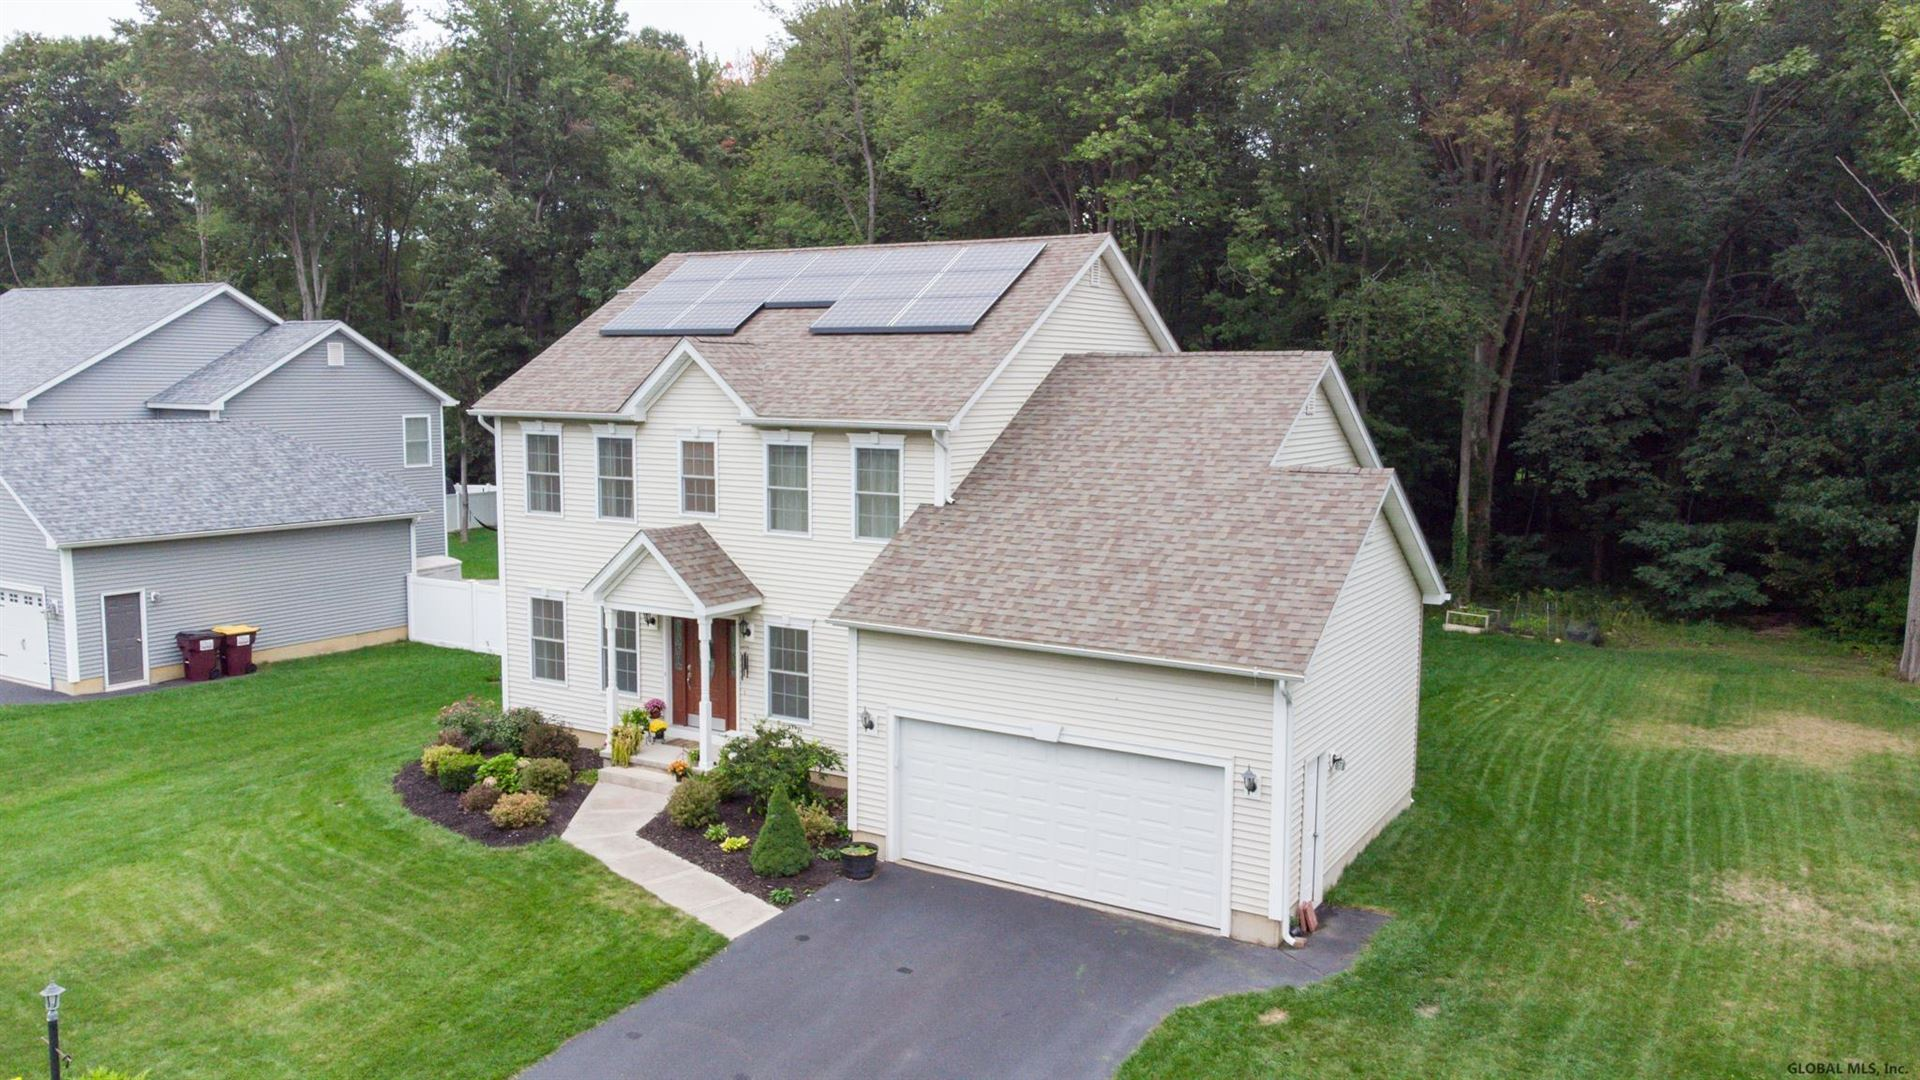 5012 COLONIAL DR                                                                               Guilderland                                                                      , NY - $535,000